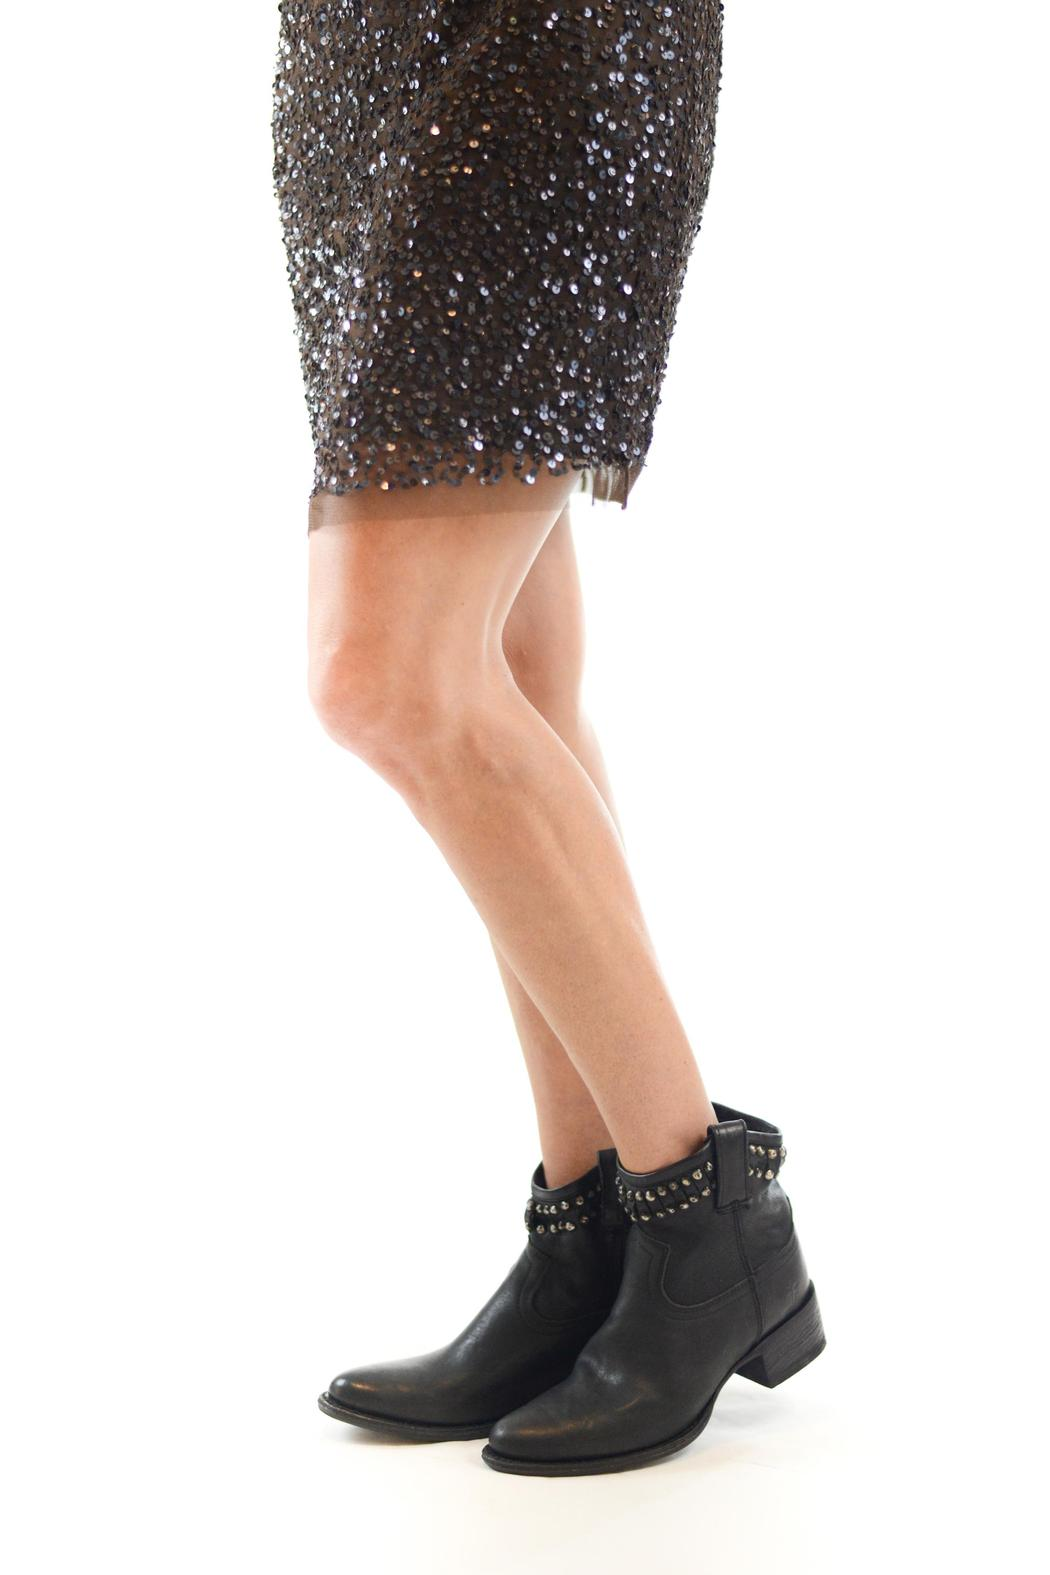 big discount cheap price best seller online Frye Diana Studded Ankle Boots prices cheap online R9OfHIr